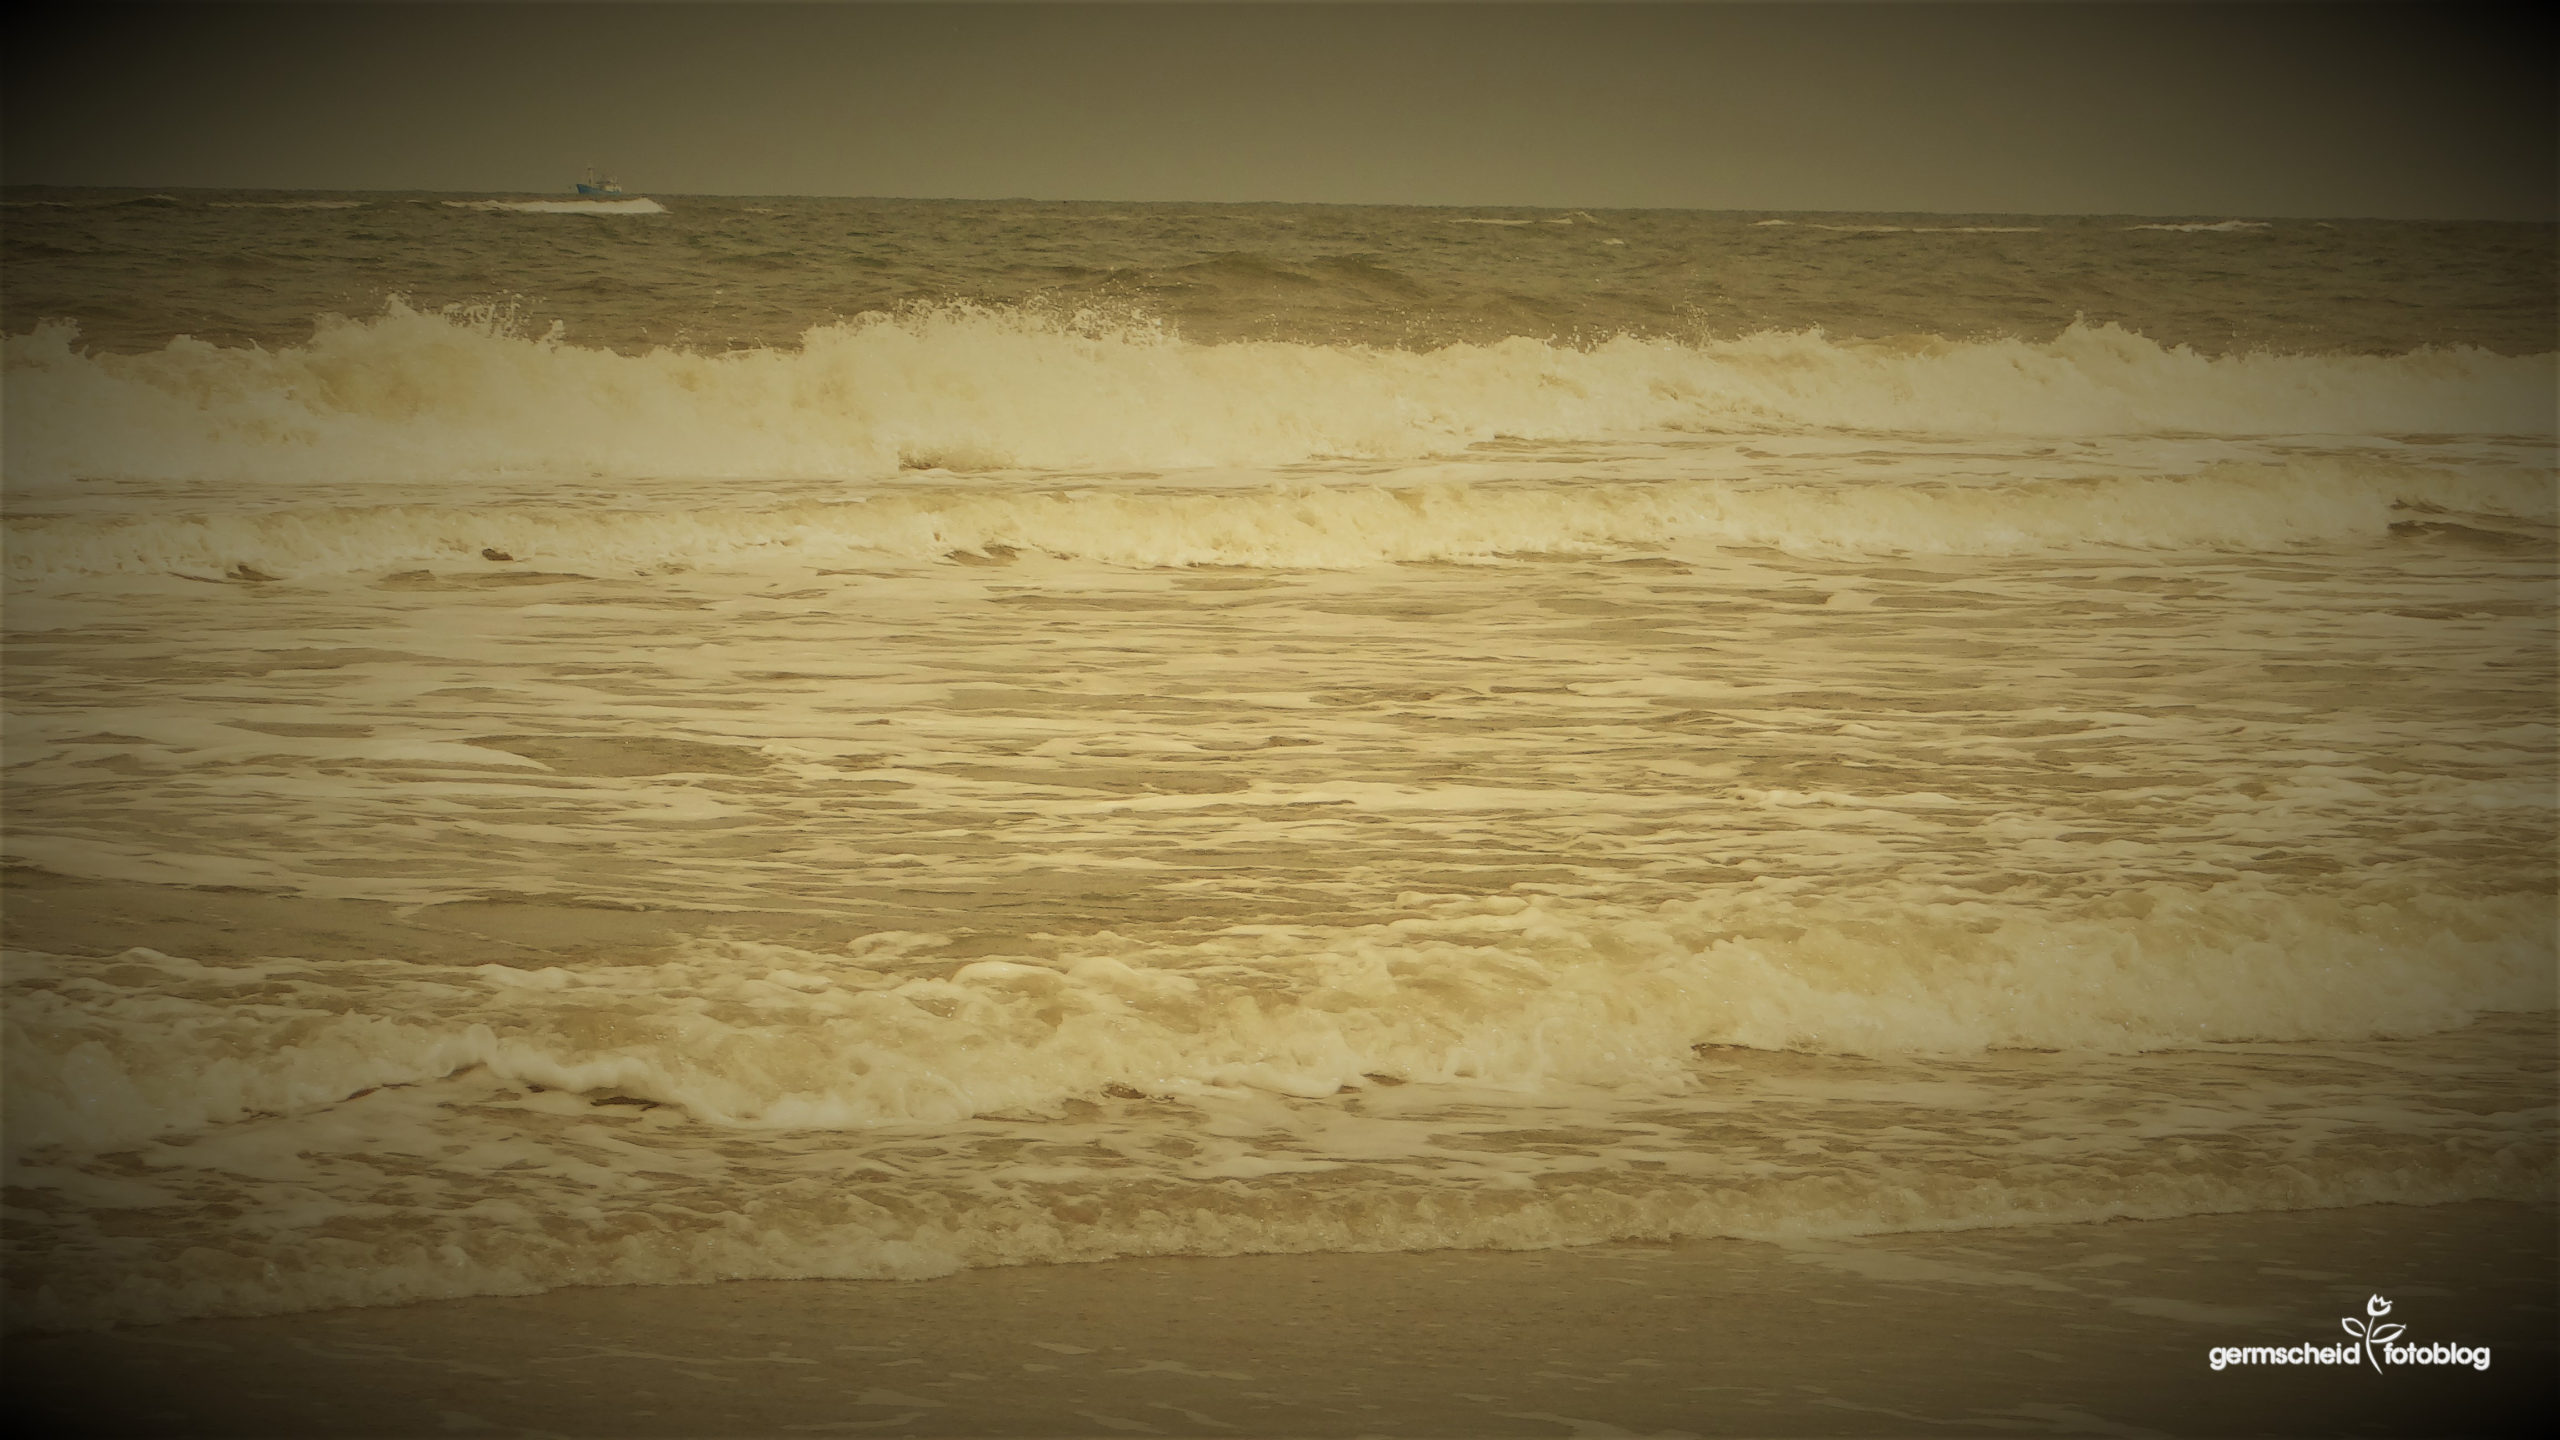 Nordsee scaled